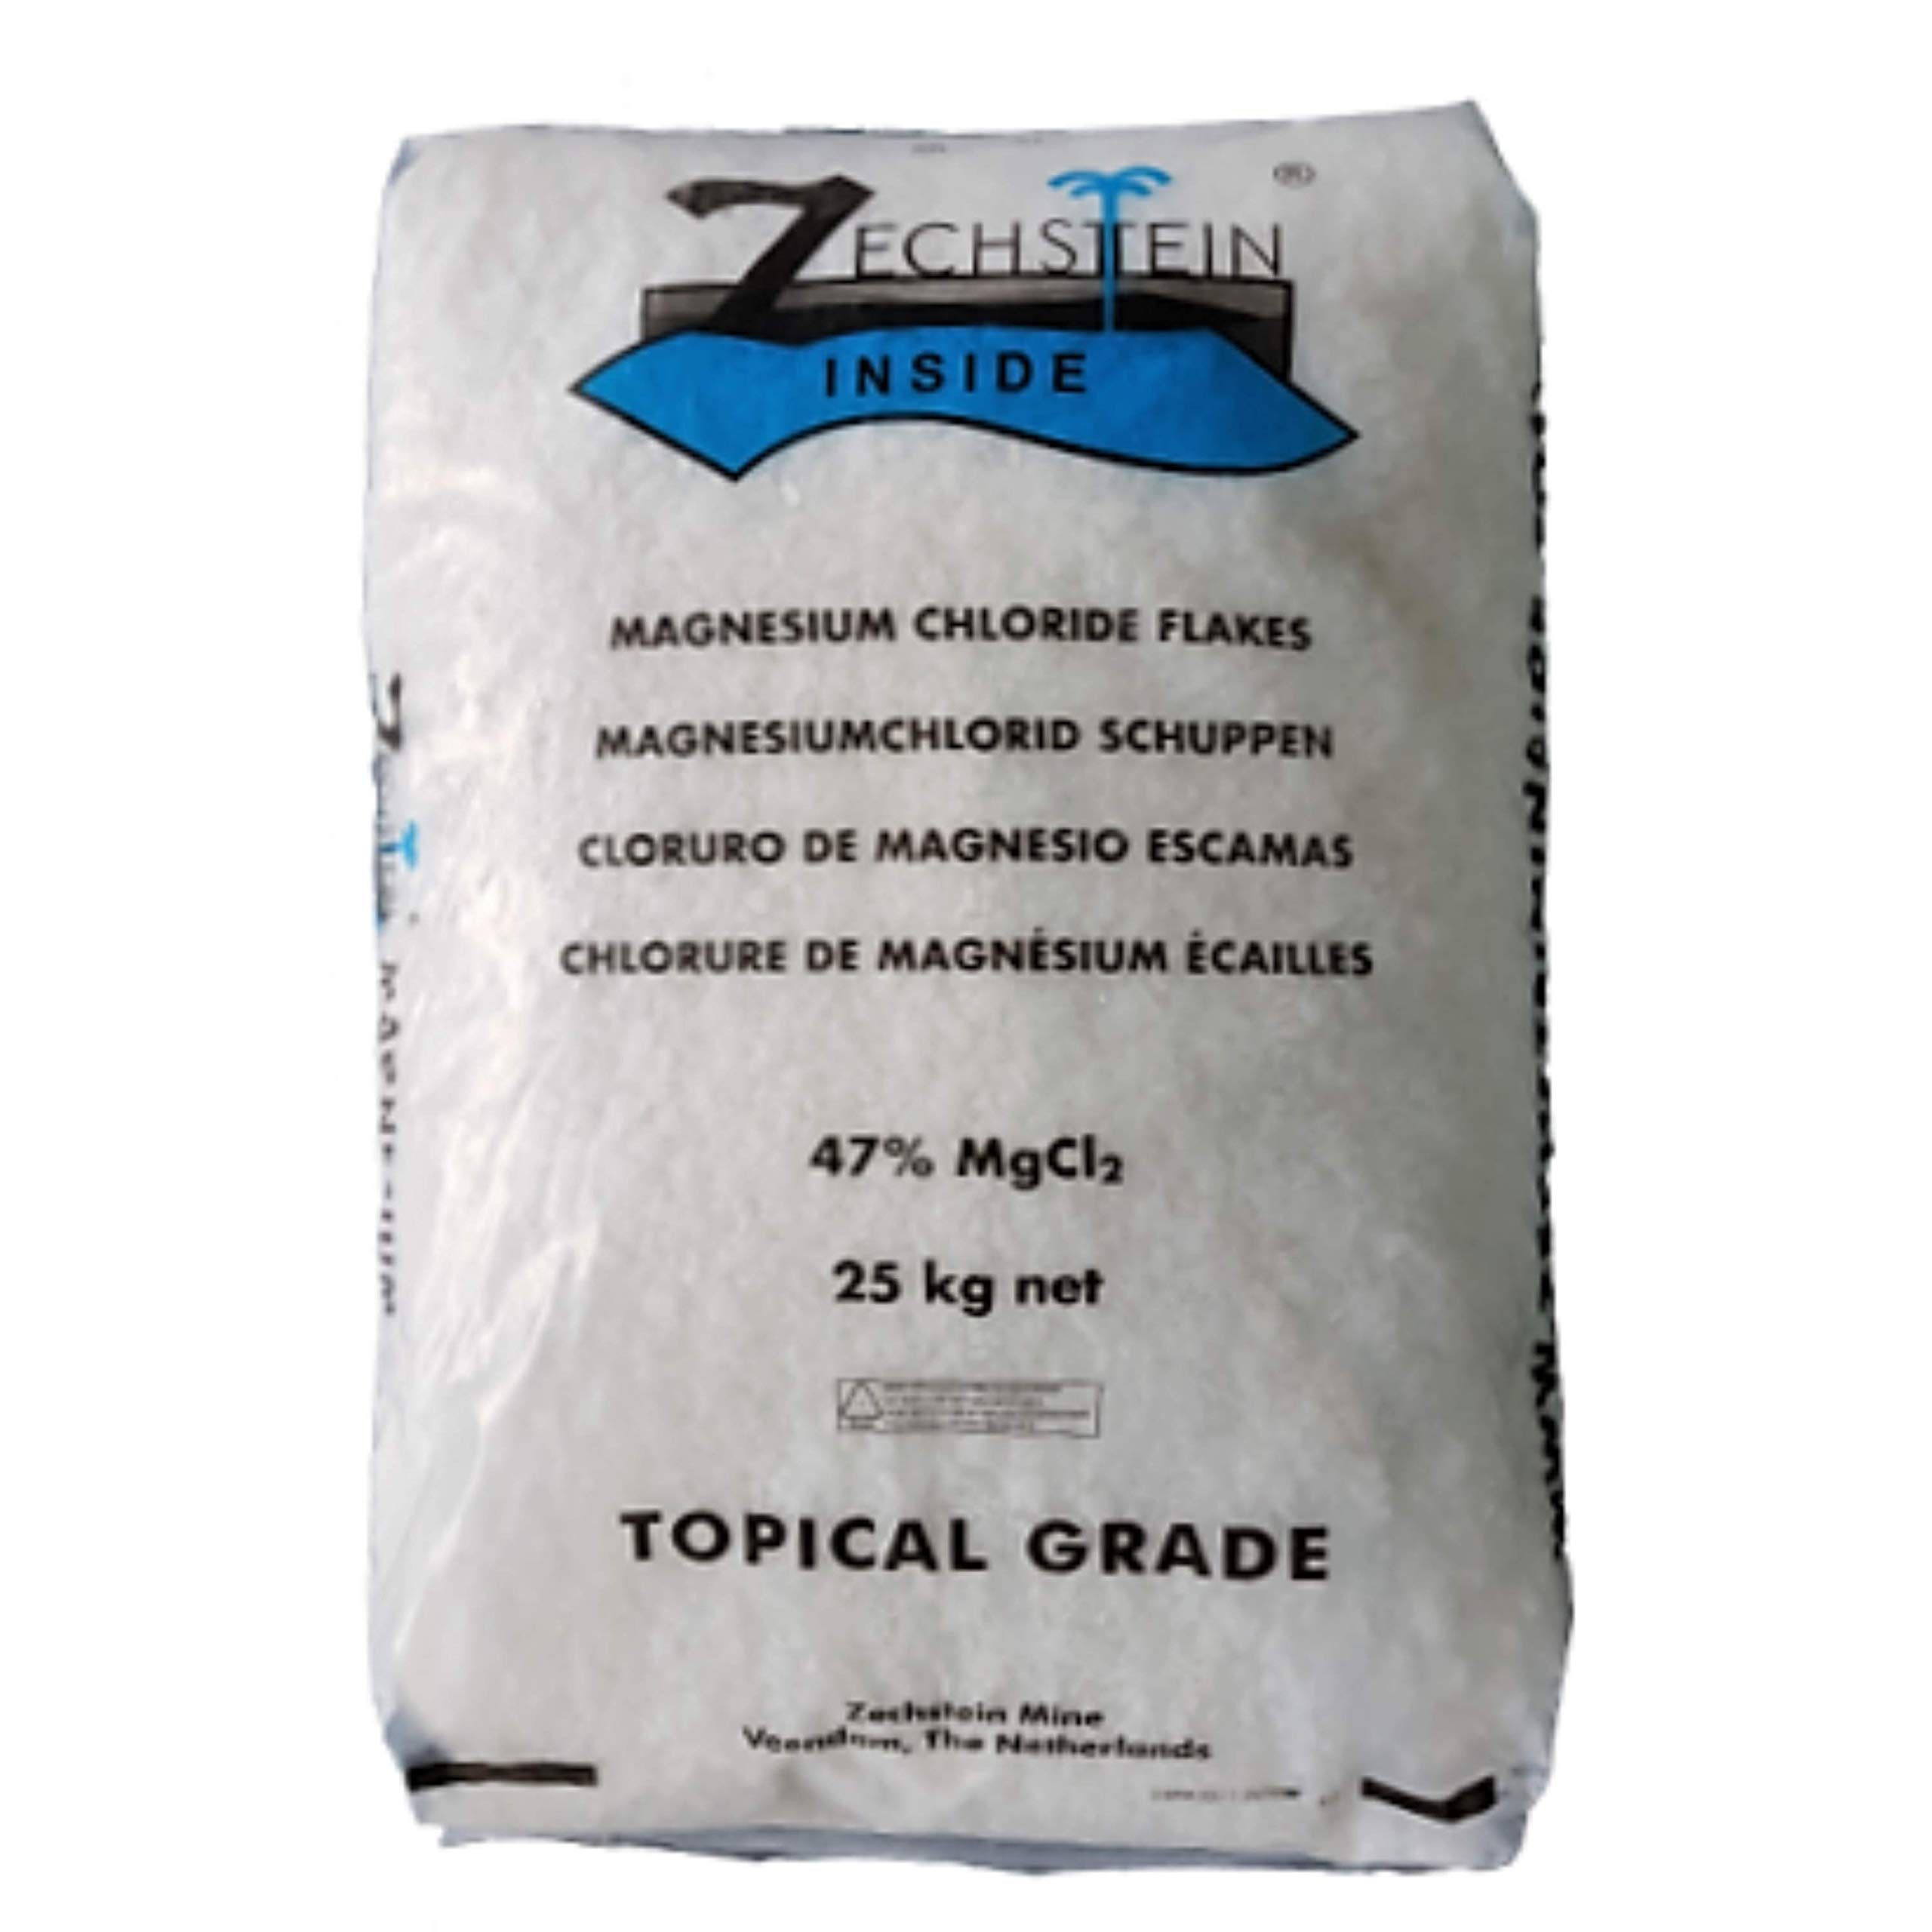 Magnesium Bath Flakes of Pure and All Natural Zechstein Inside Protocol, Highest Quality Magnesium Chloride for Bath and Foot Soaks, Bulk 56lb Bag - 25kg by Three Drops of Life